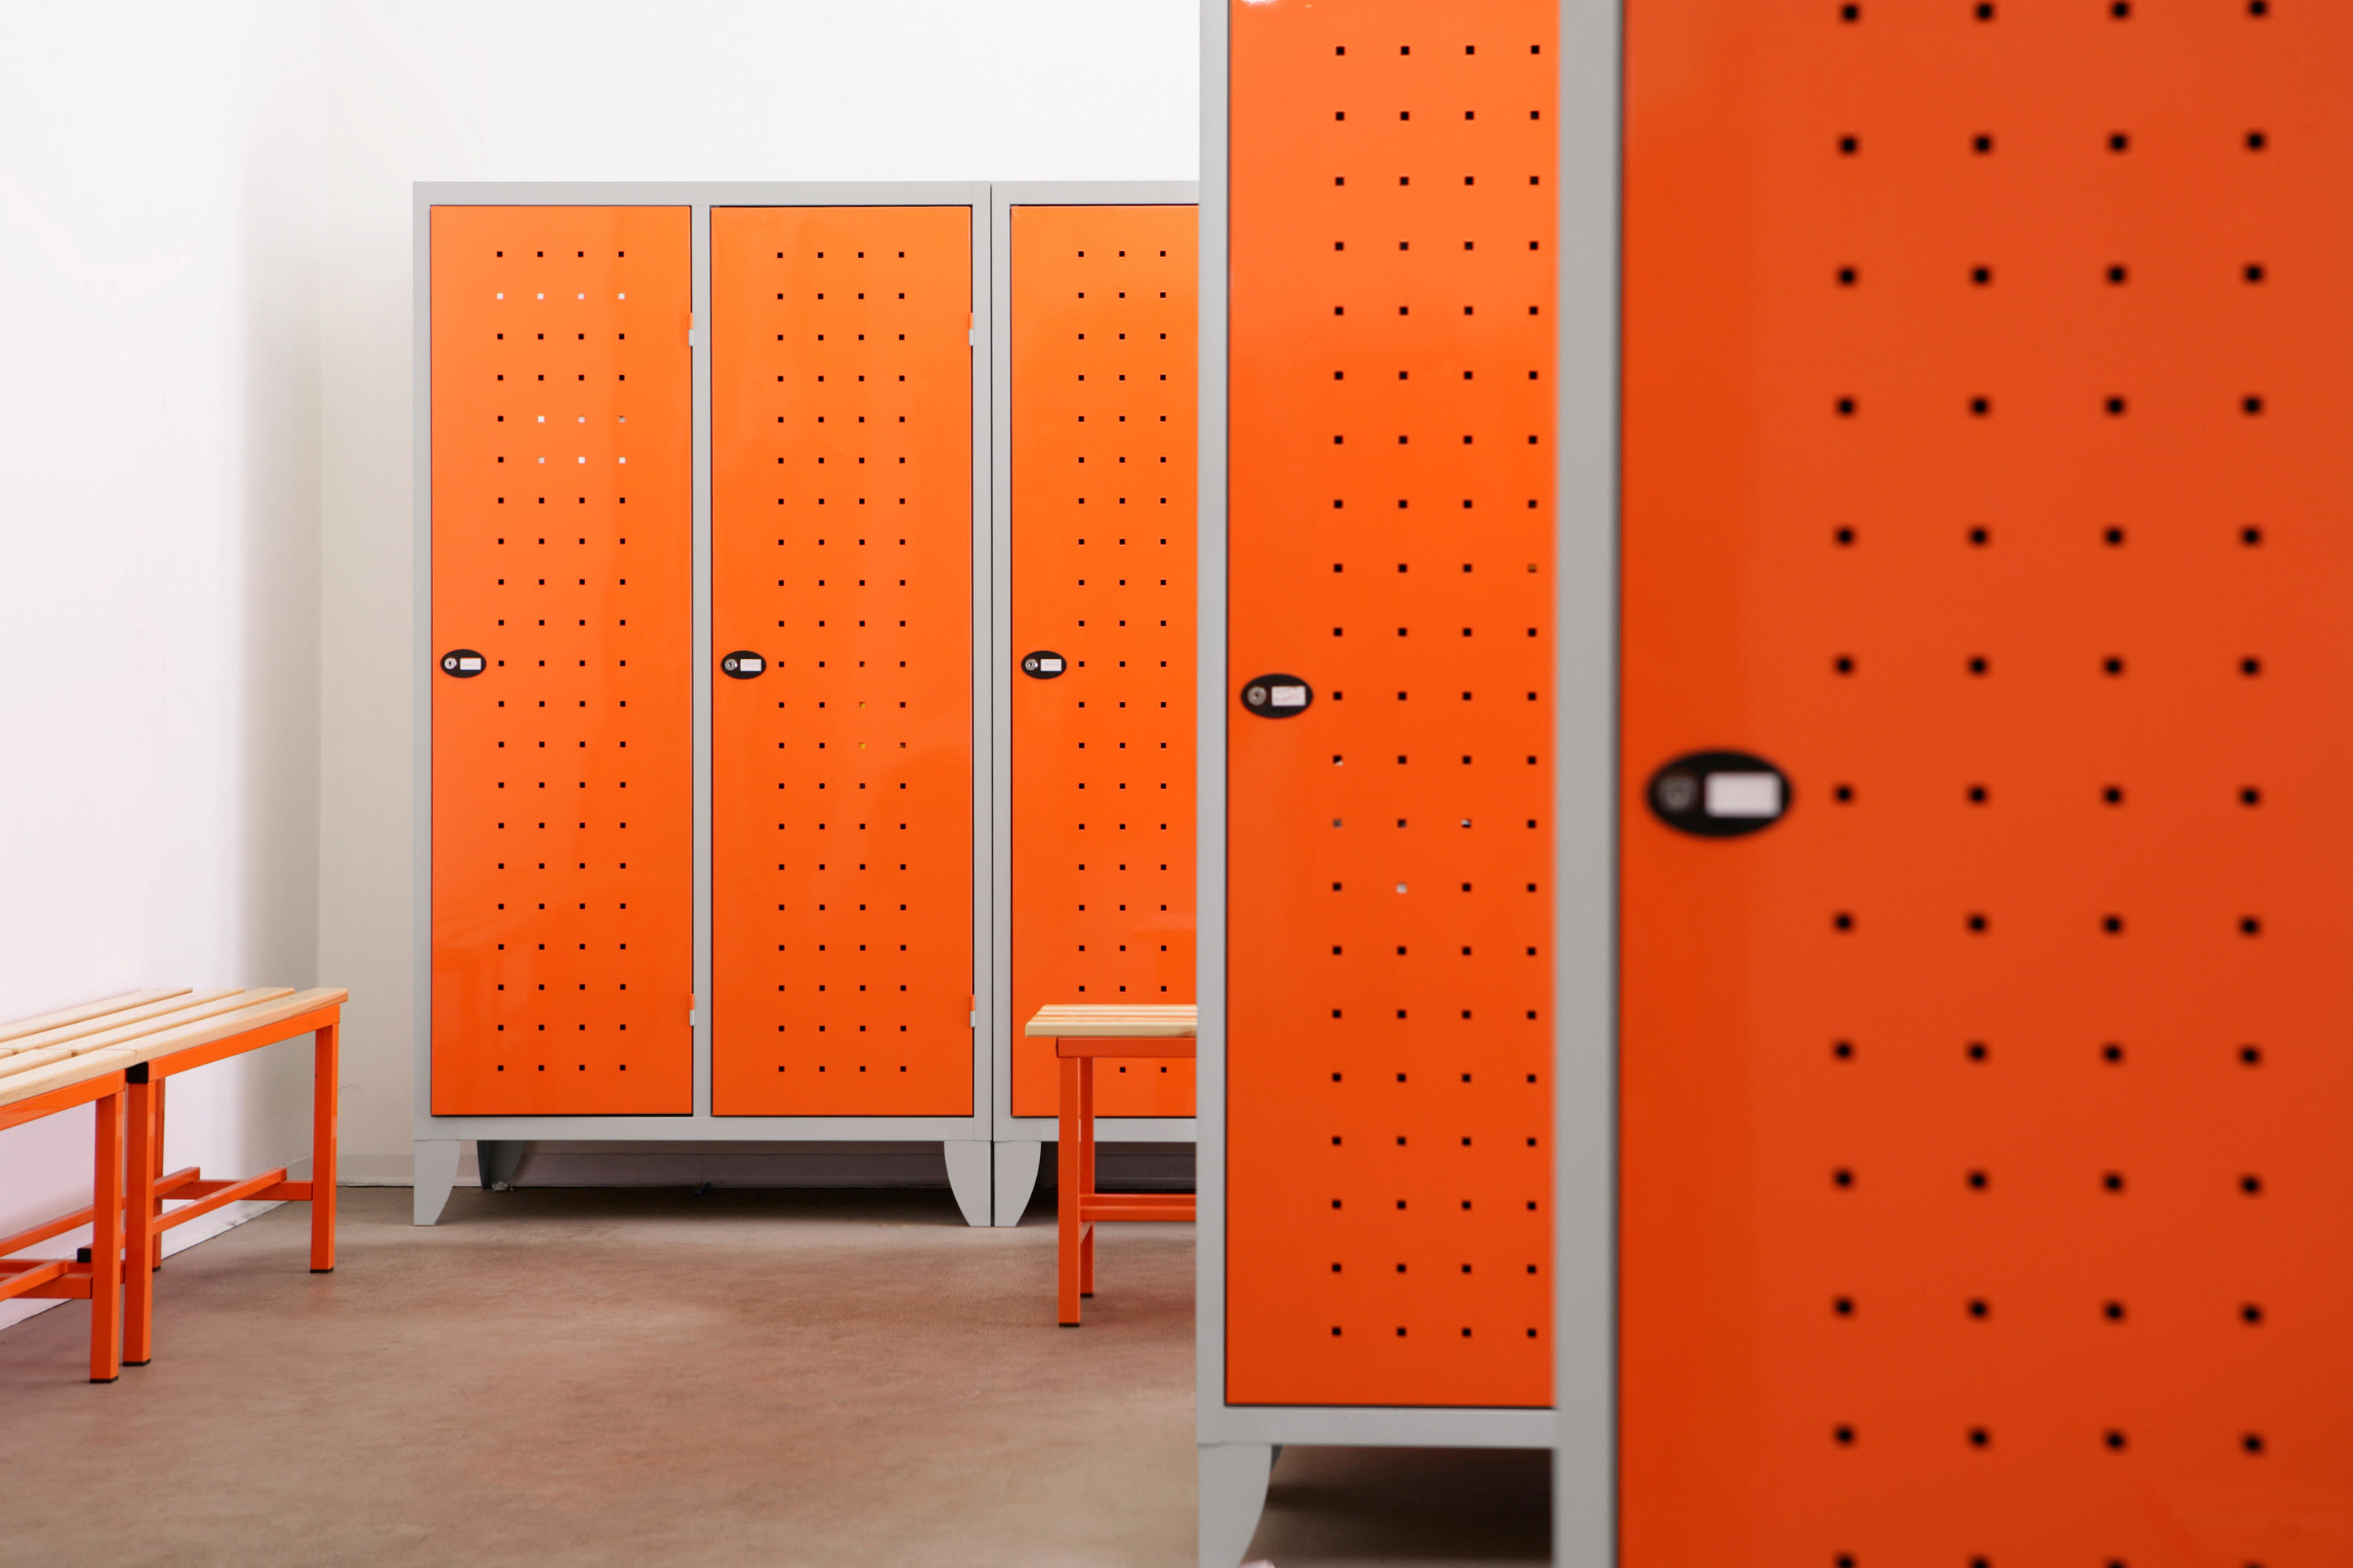 Monoplus design 1 door locker lockers from dieffebi for Designer lockers